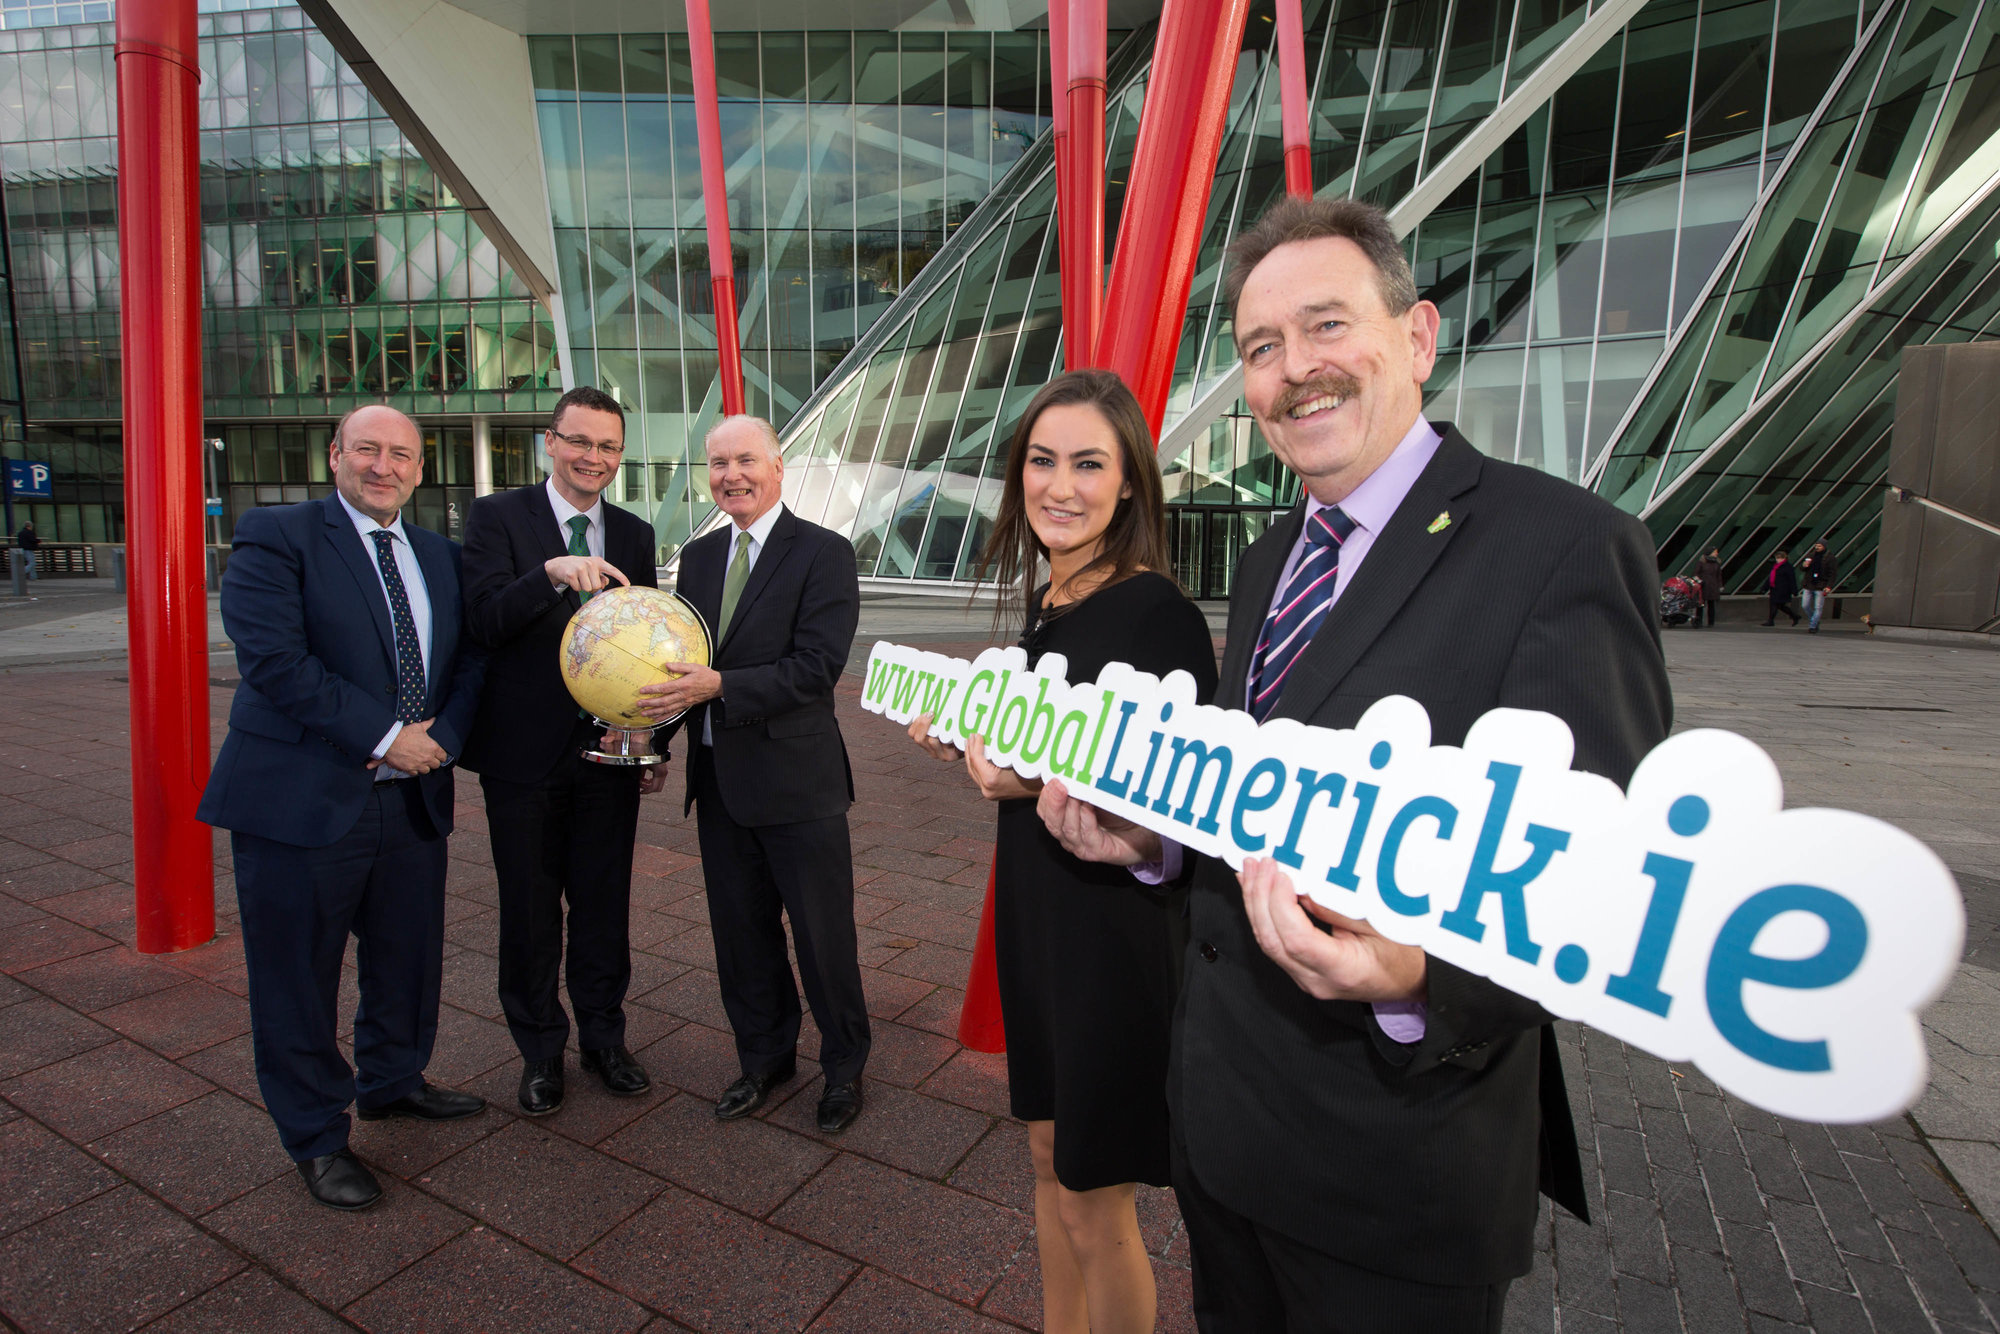 Global Limerick